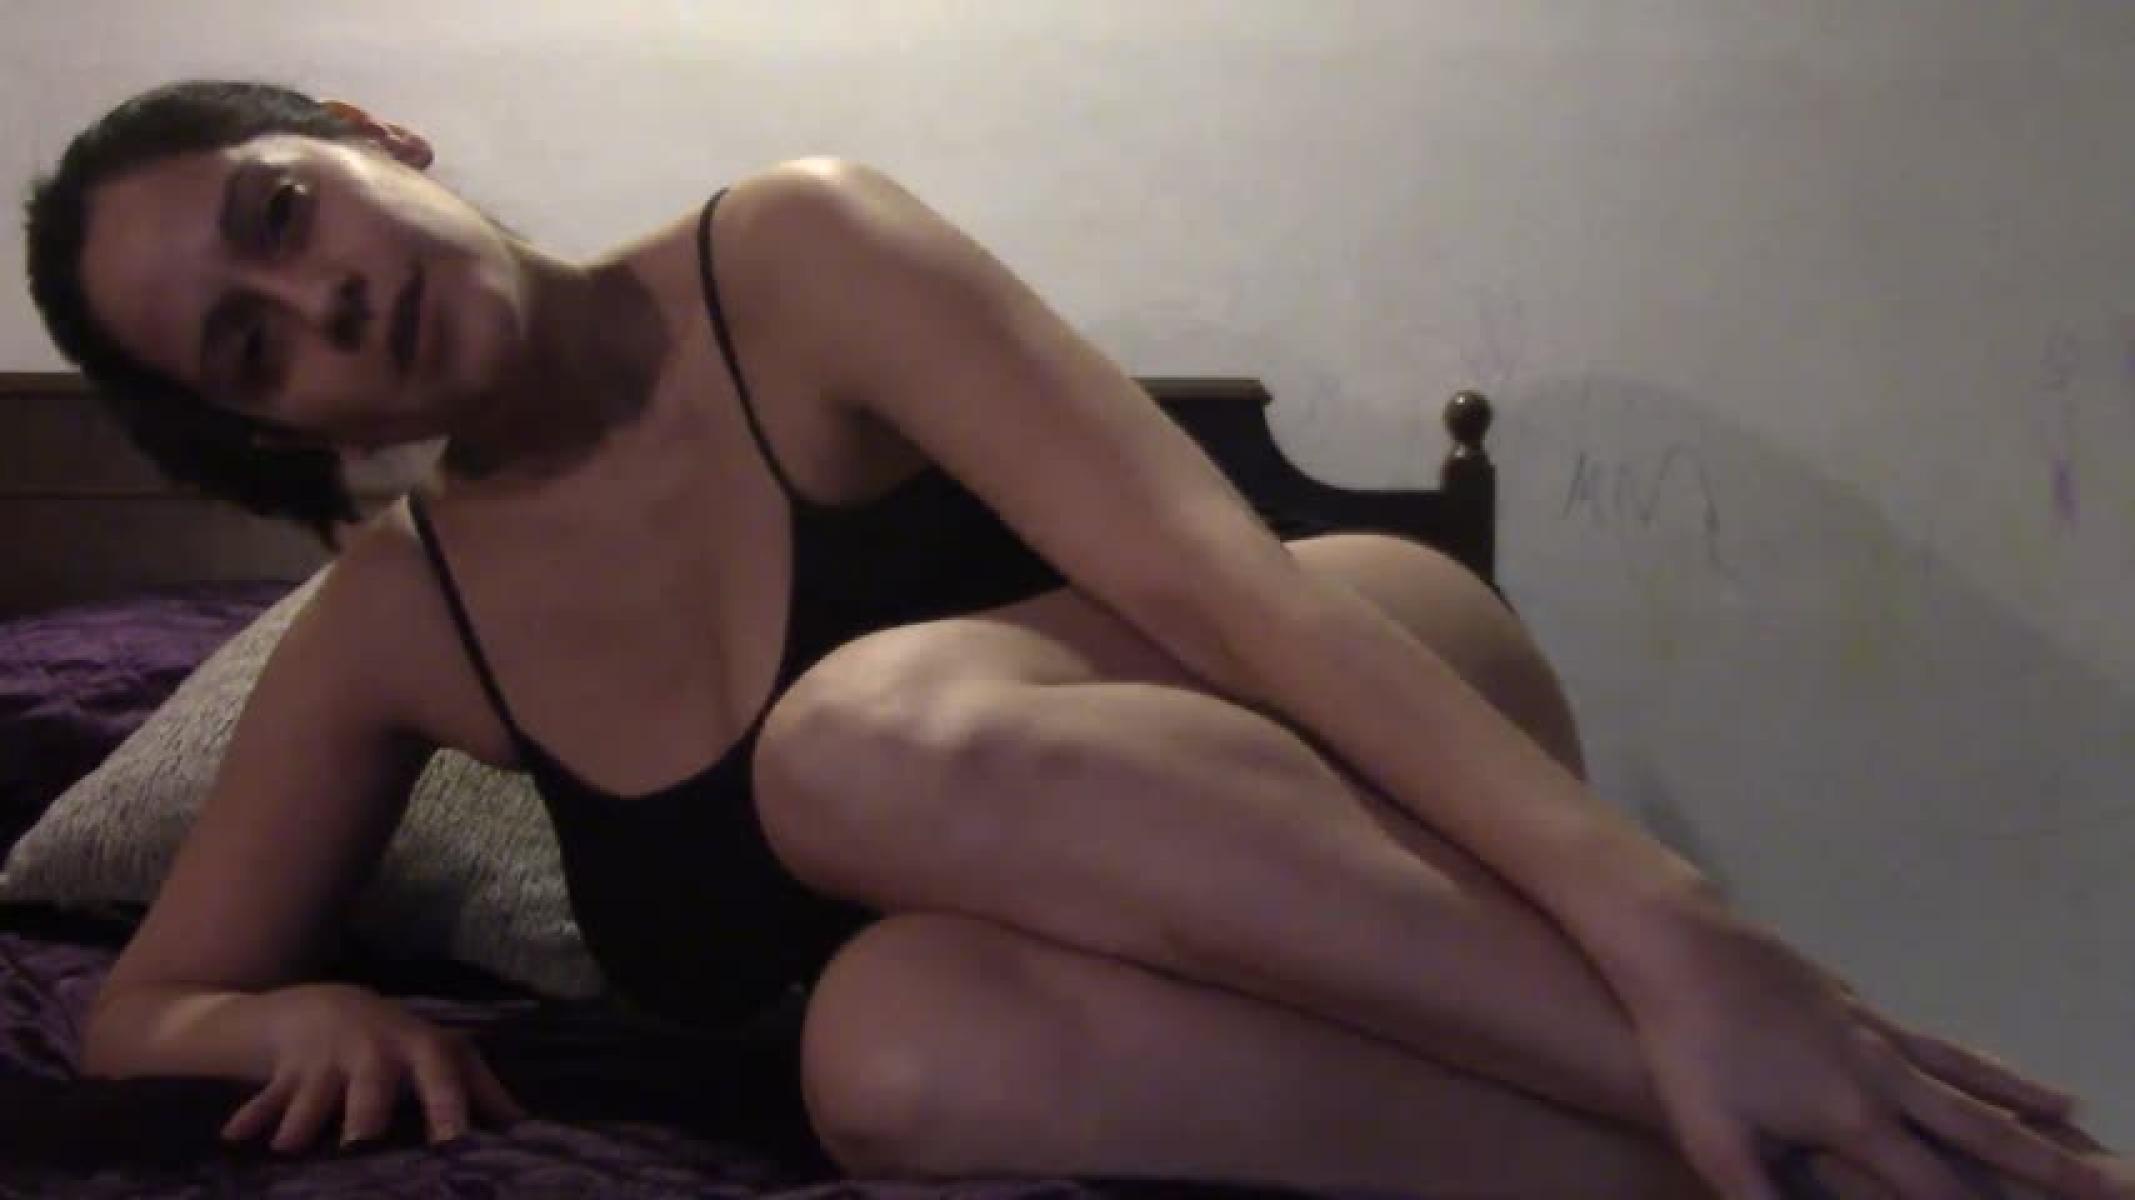 fiorentino-porn-amateur-home-video-adult-group